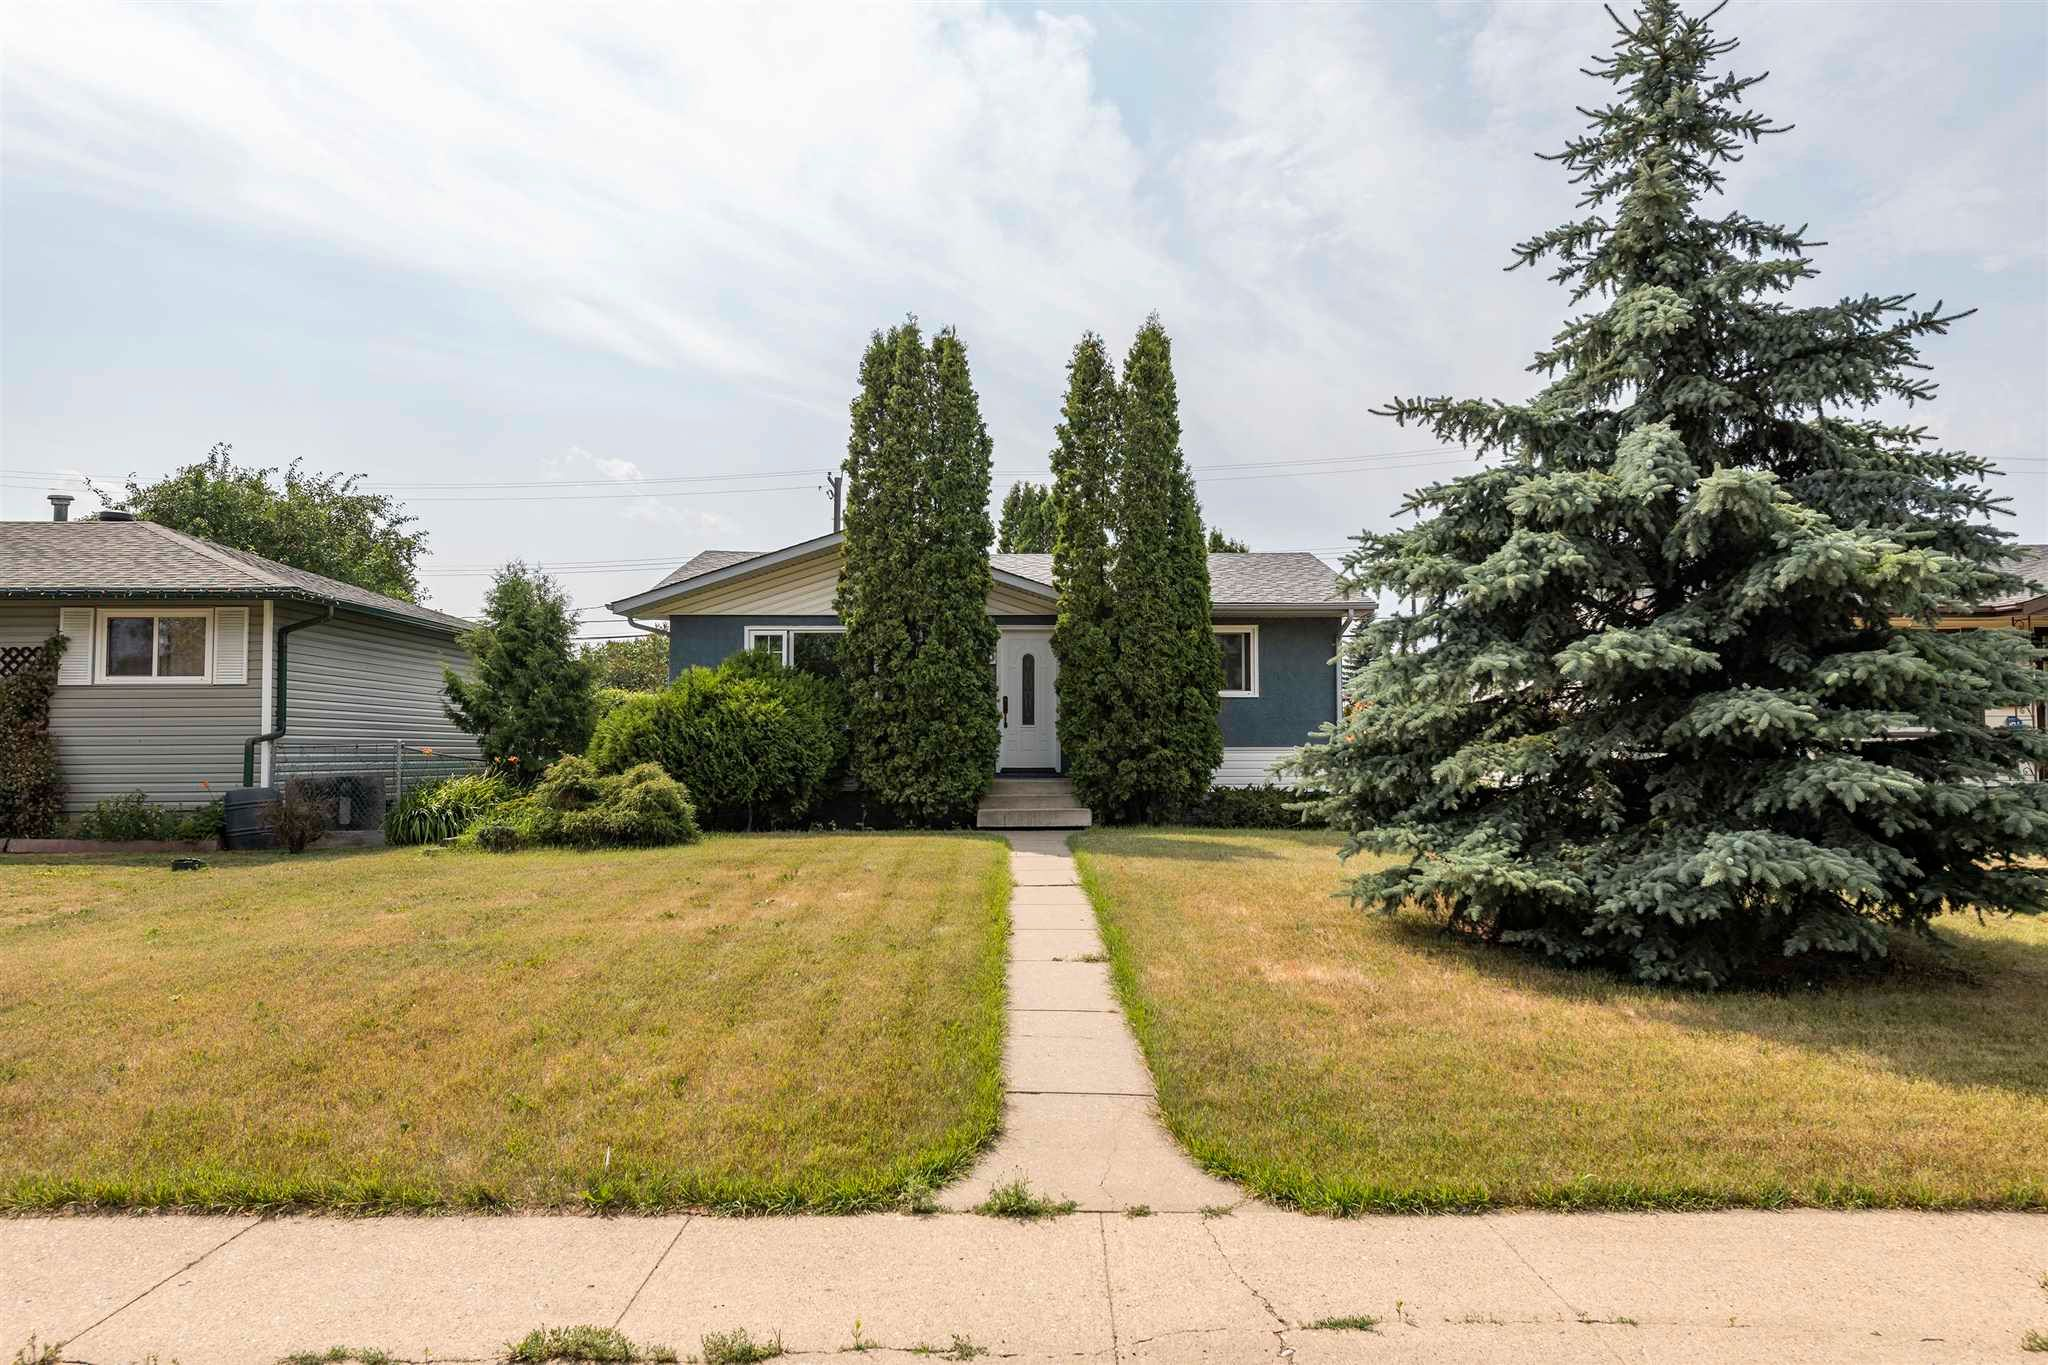 Main Photo: 12836 73 Street NW in Edmonton: Zone 02 House for sale : MLS®# E4256298